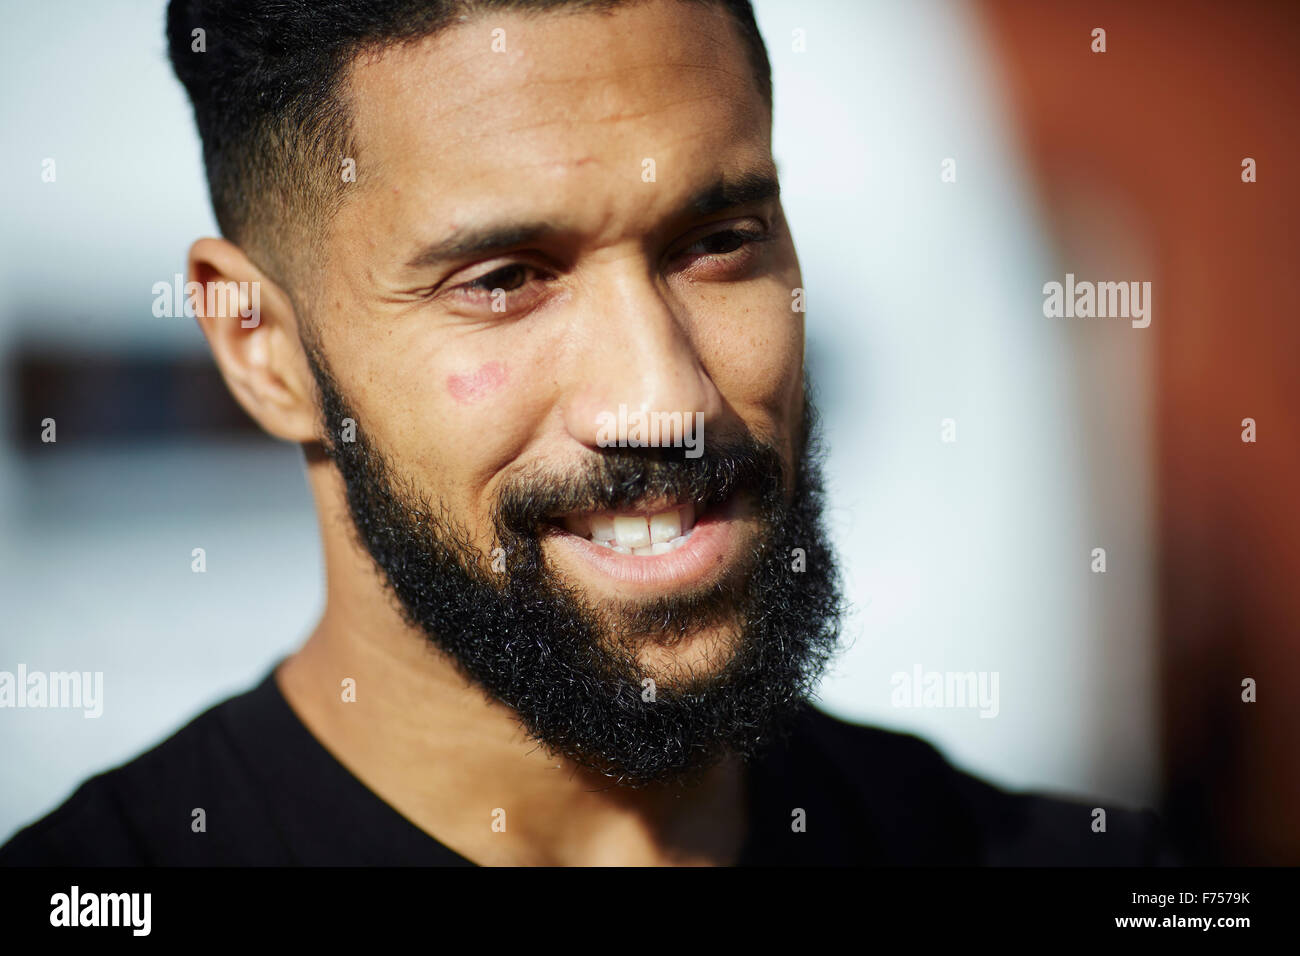 Manchester City and French national football soccer player  Gael Clichy   Asian beard scar face cheek talking headshot - Stock Image